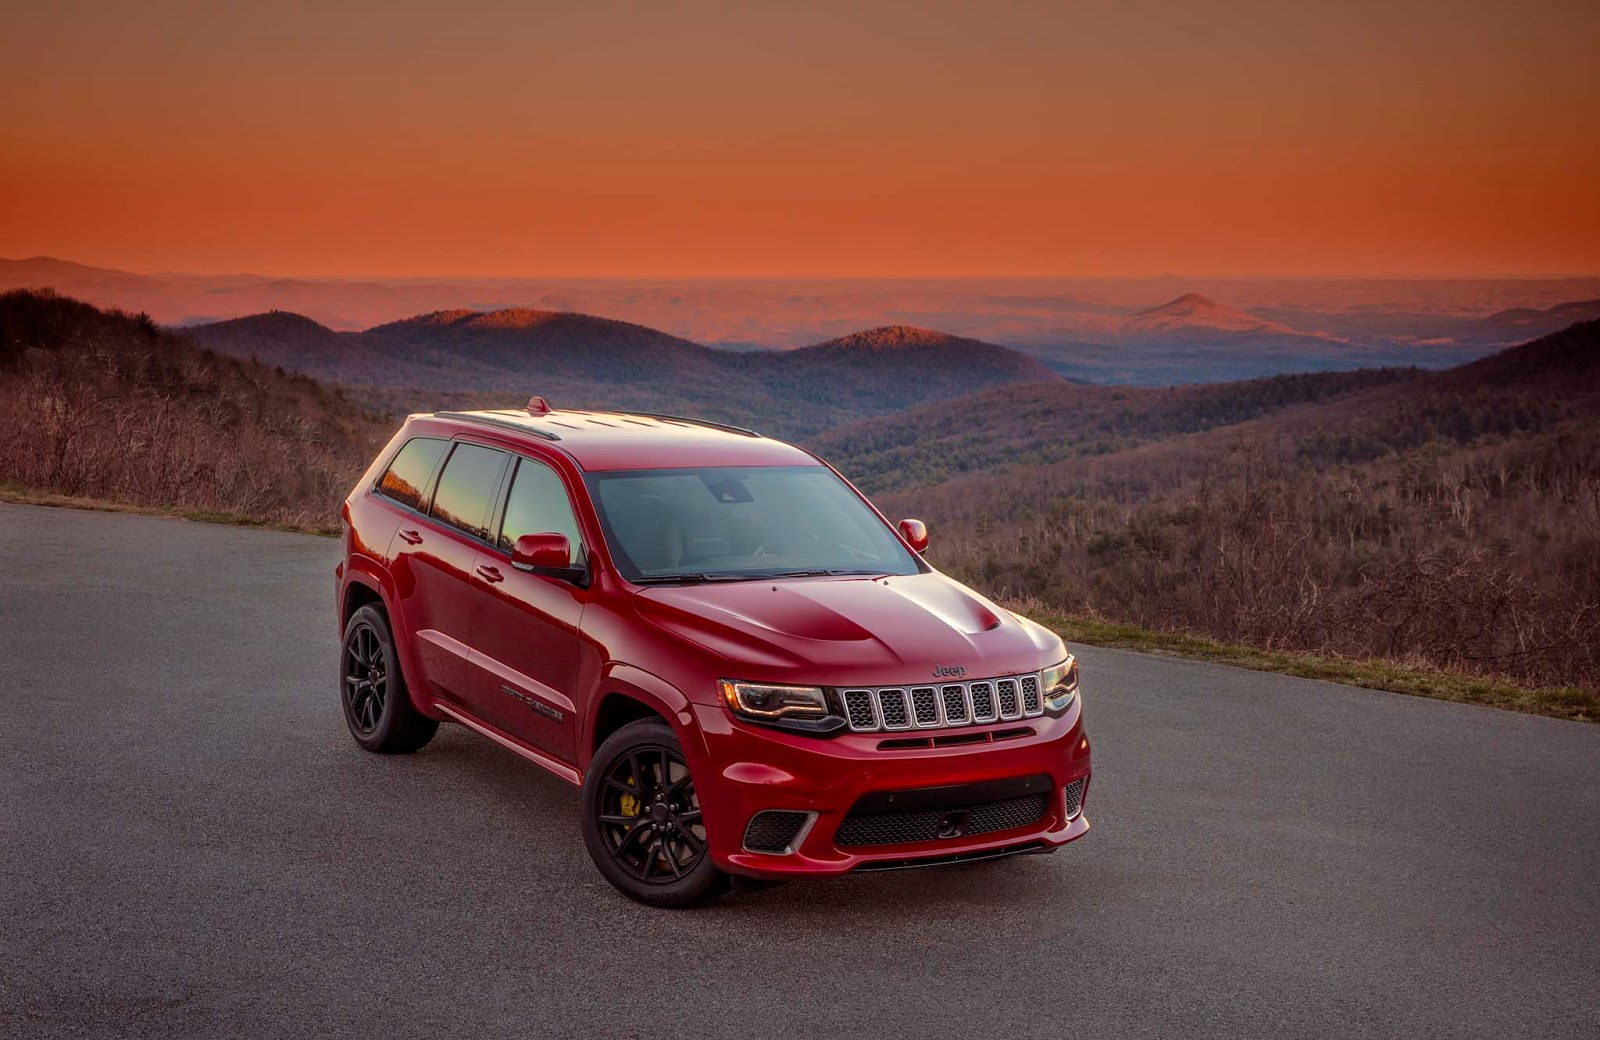 Jeep S Most Expensive Model Yet Is The 2018 Grand Cherokee